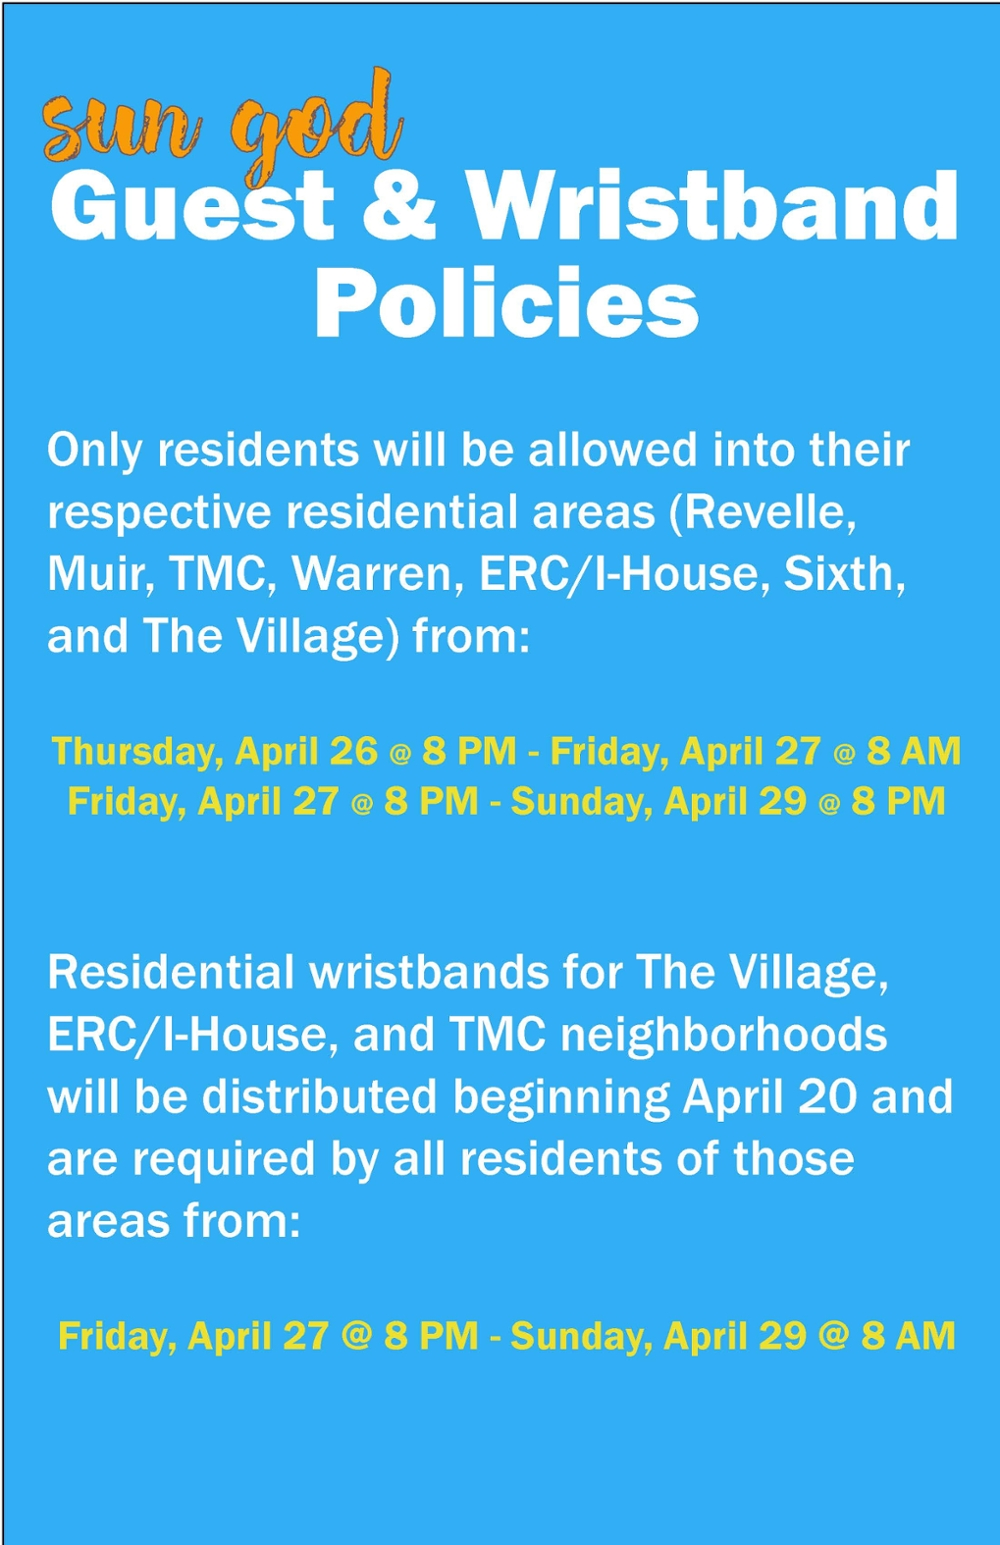 Sun God Weekend Residential Guest and Wristband Policies